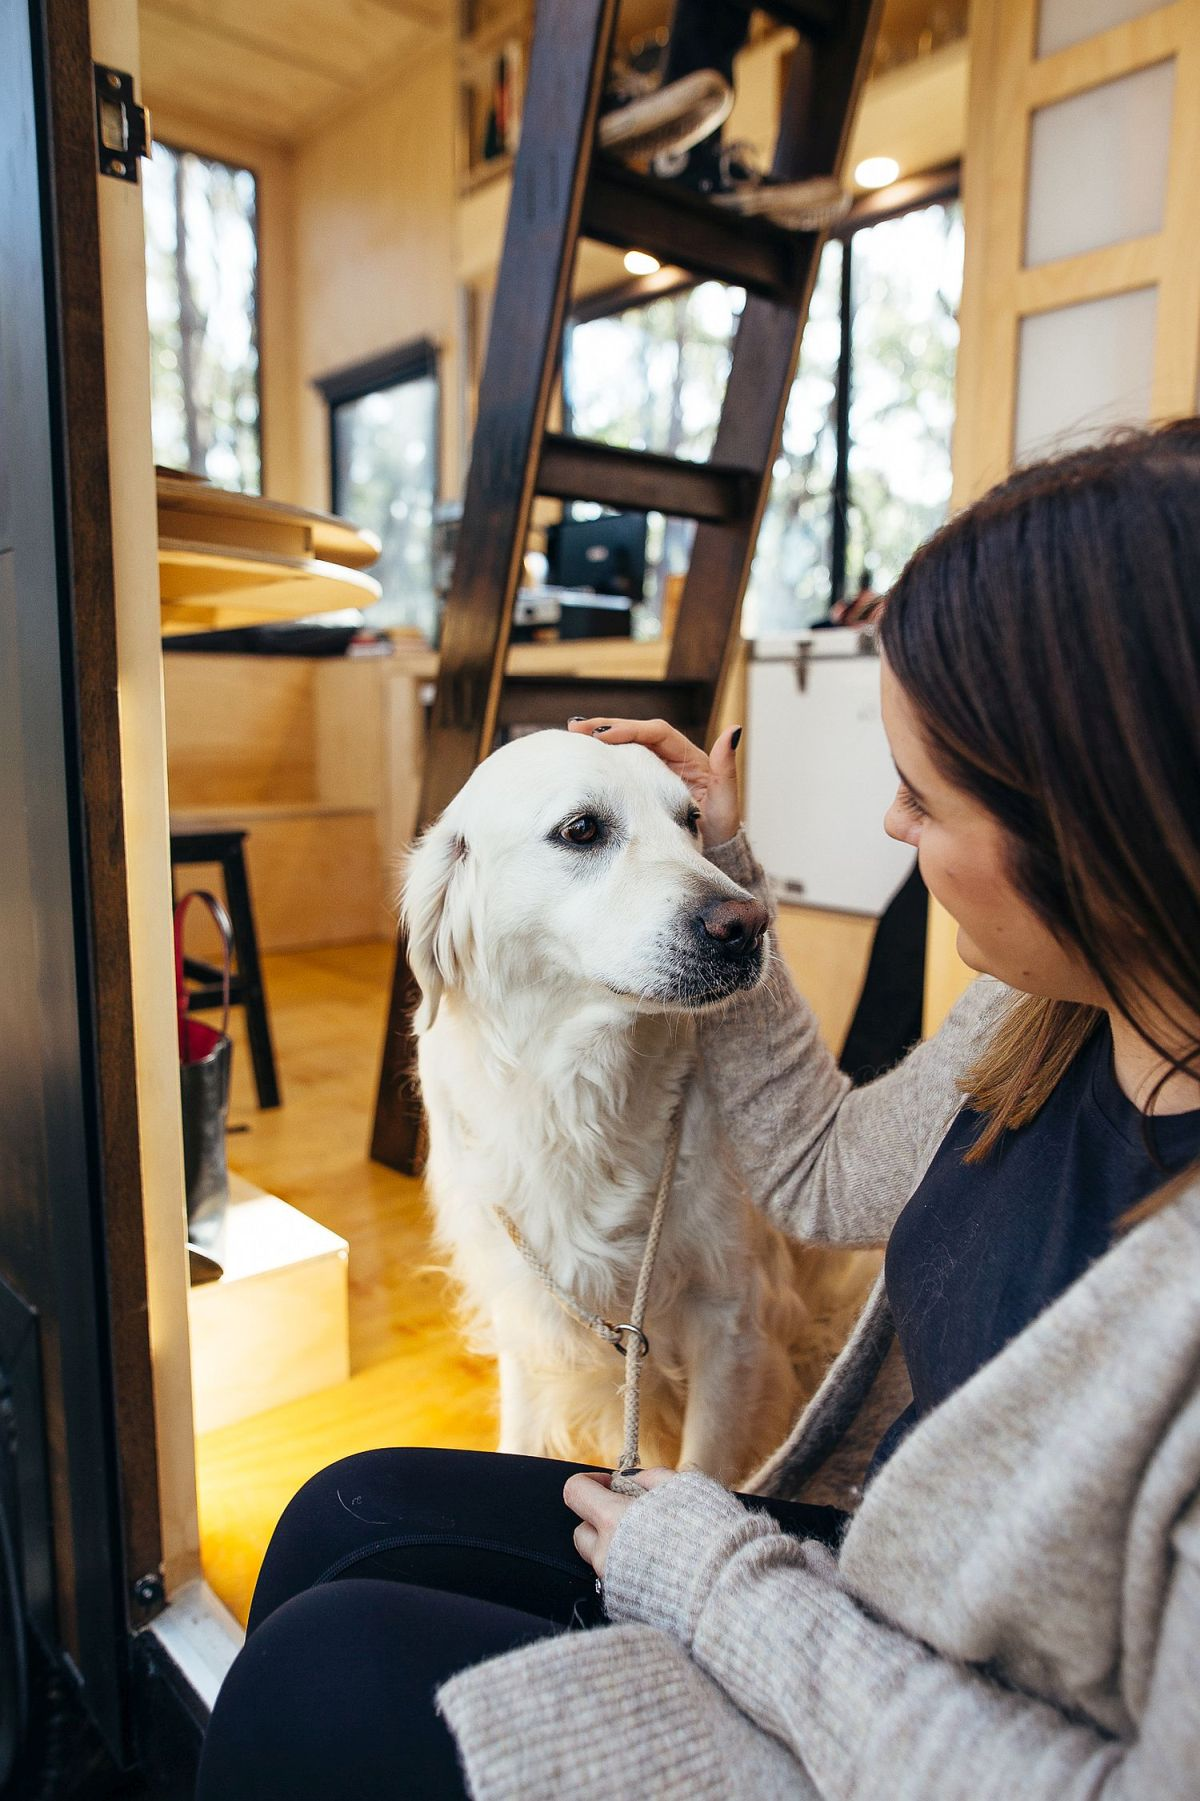 This CABN is a charming retreat, perfect if you want to disconnect from everything and just spend some quality time with your pet